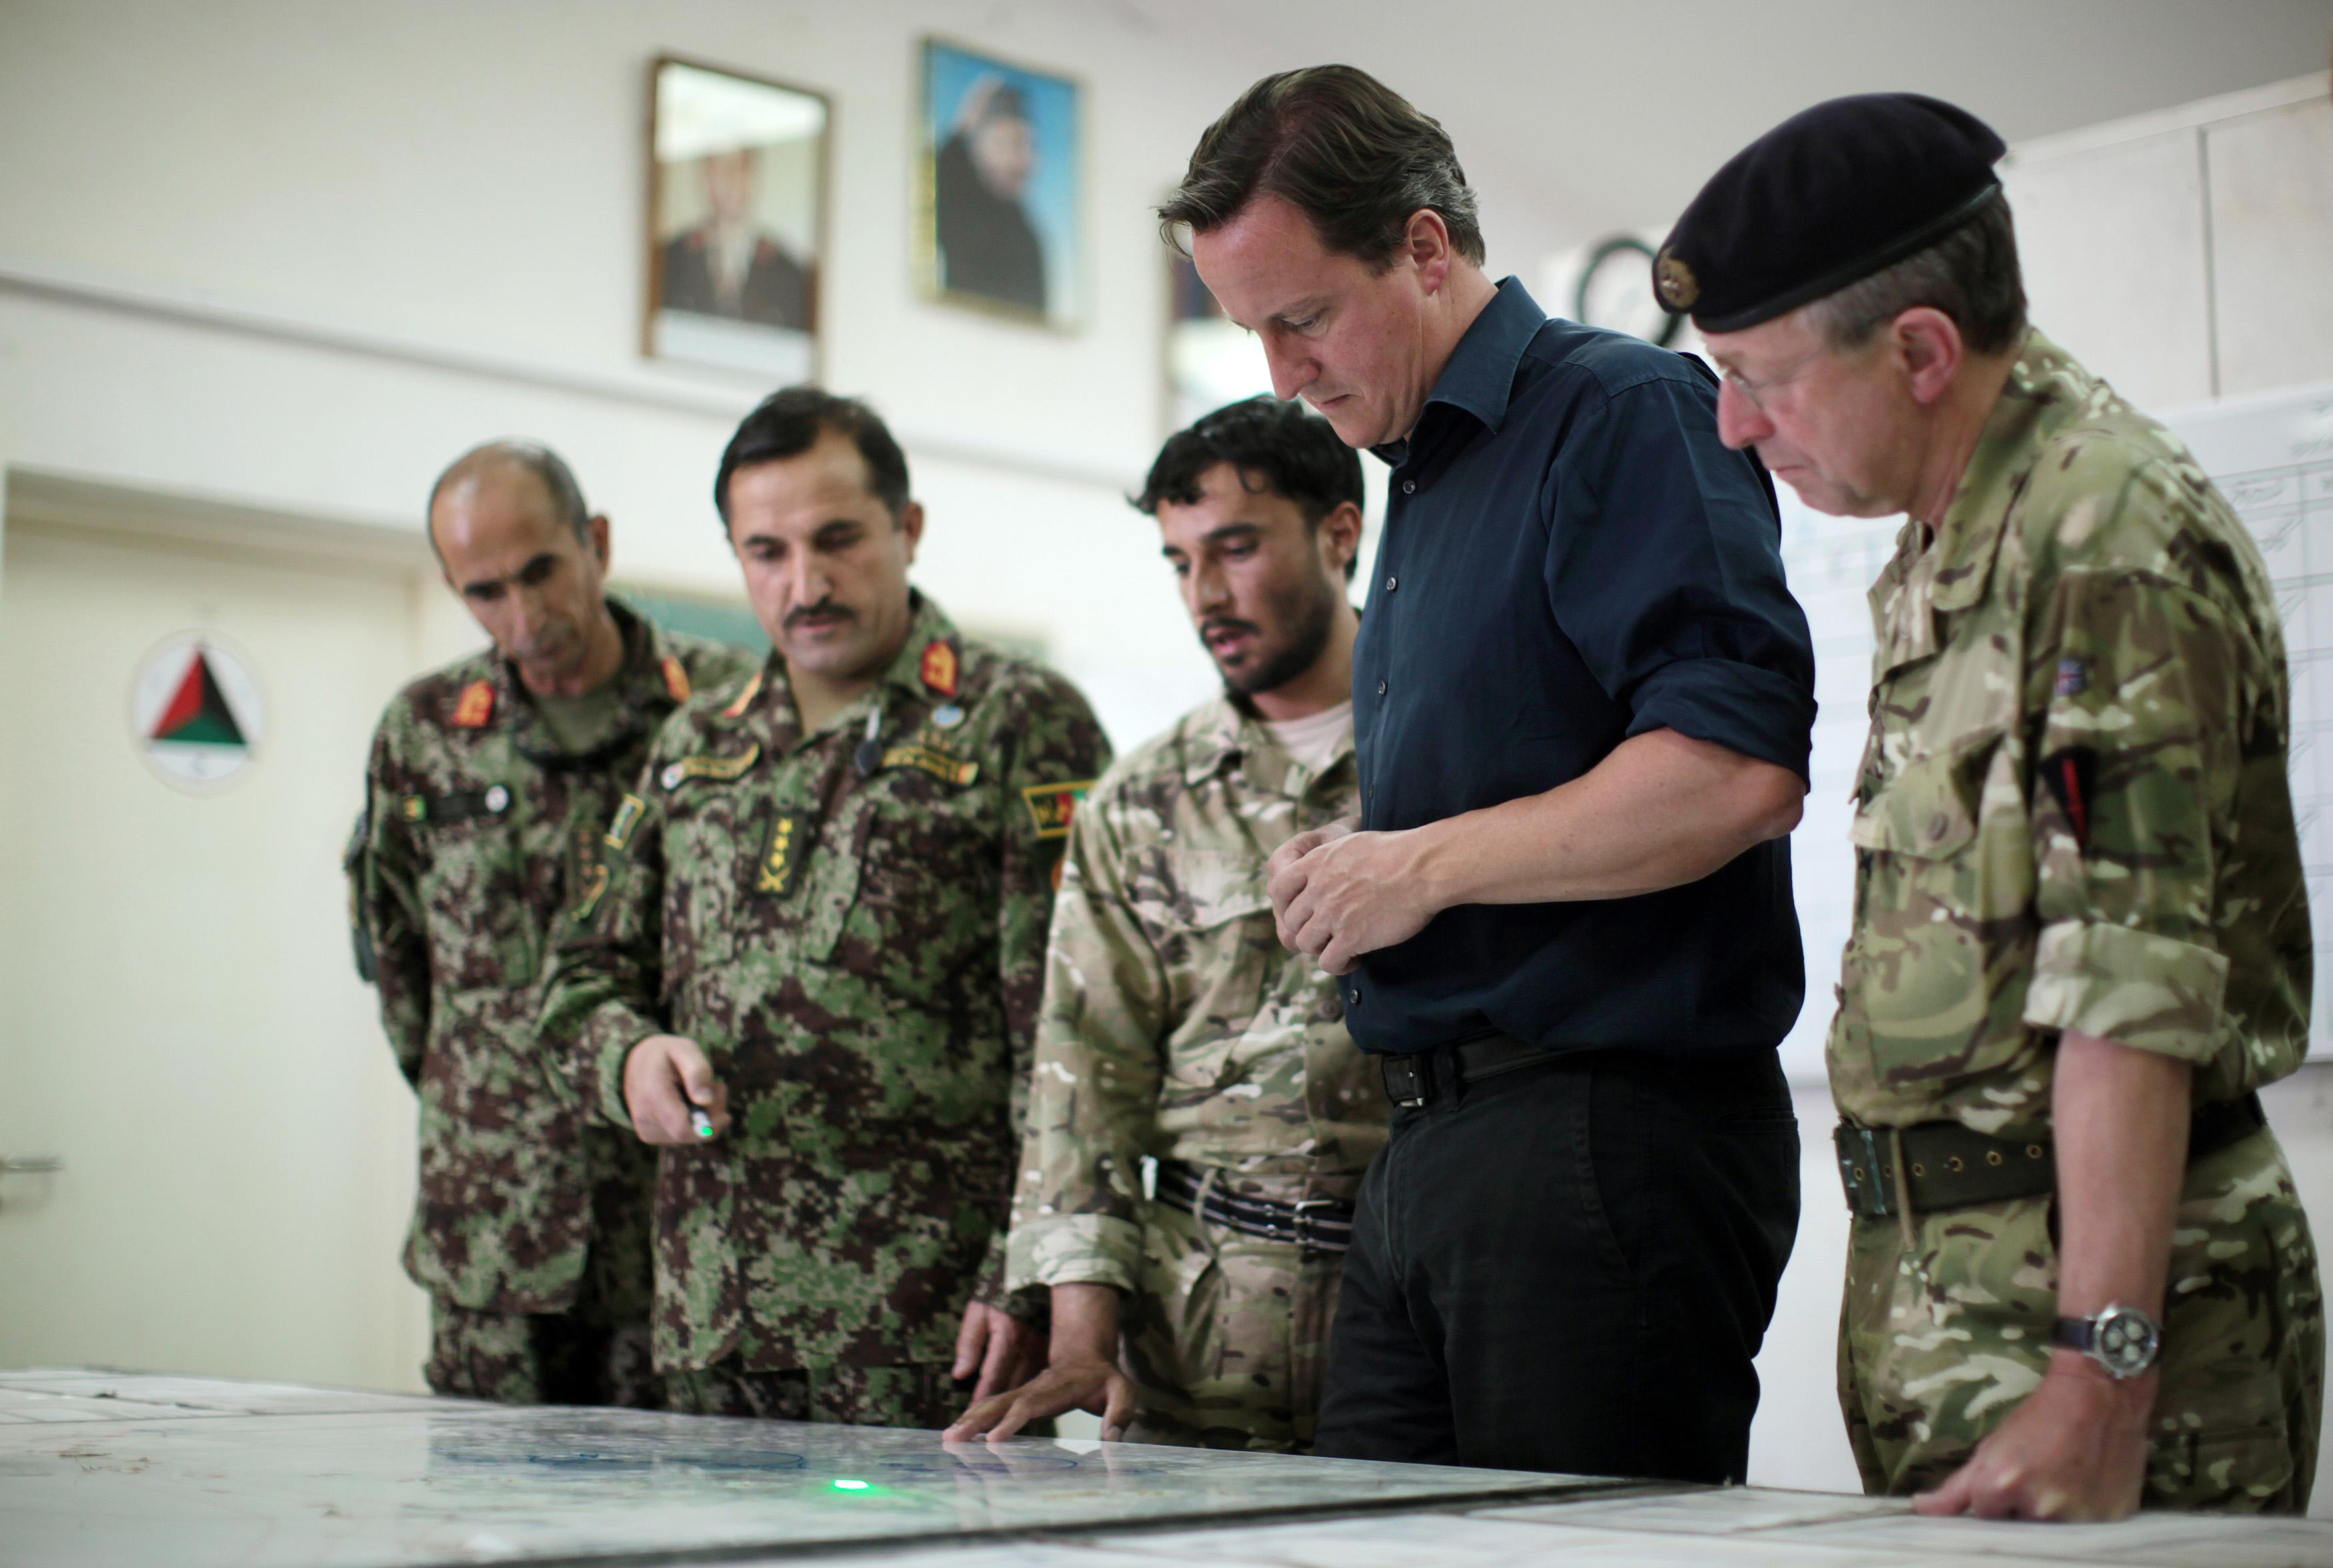 Cameron in Afghanistan